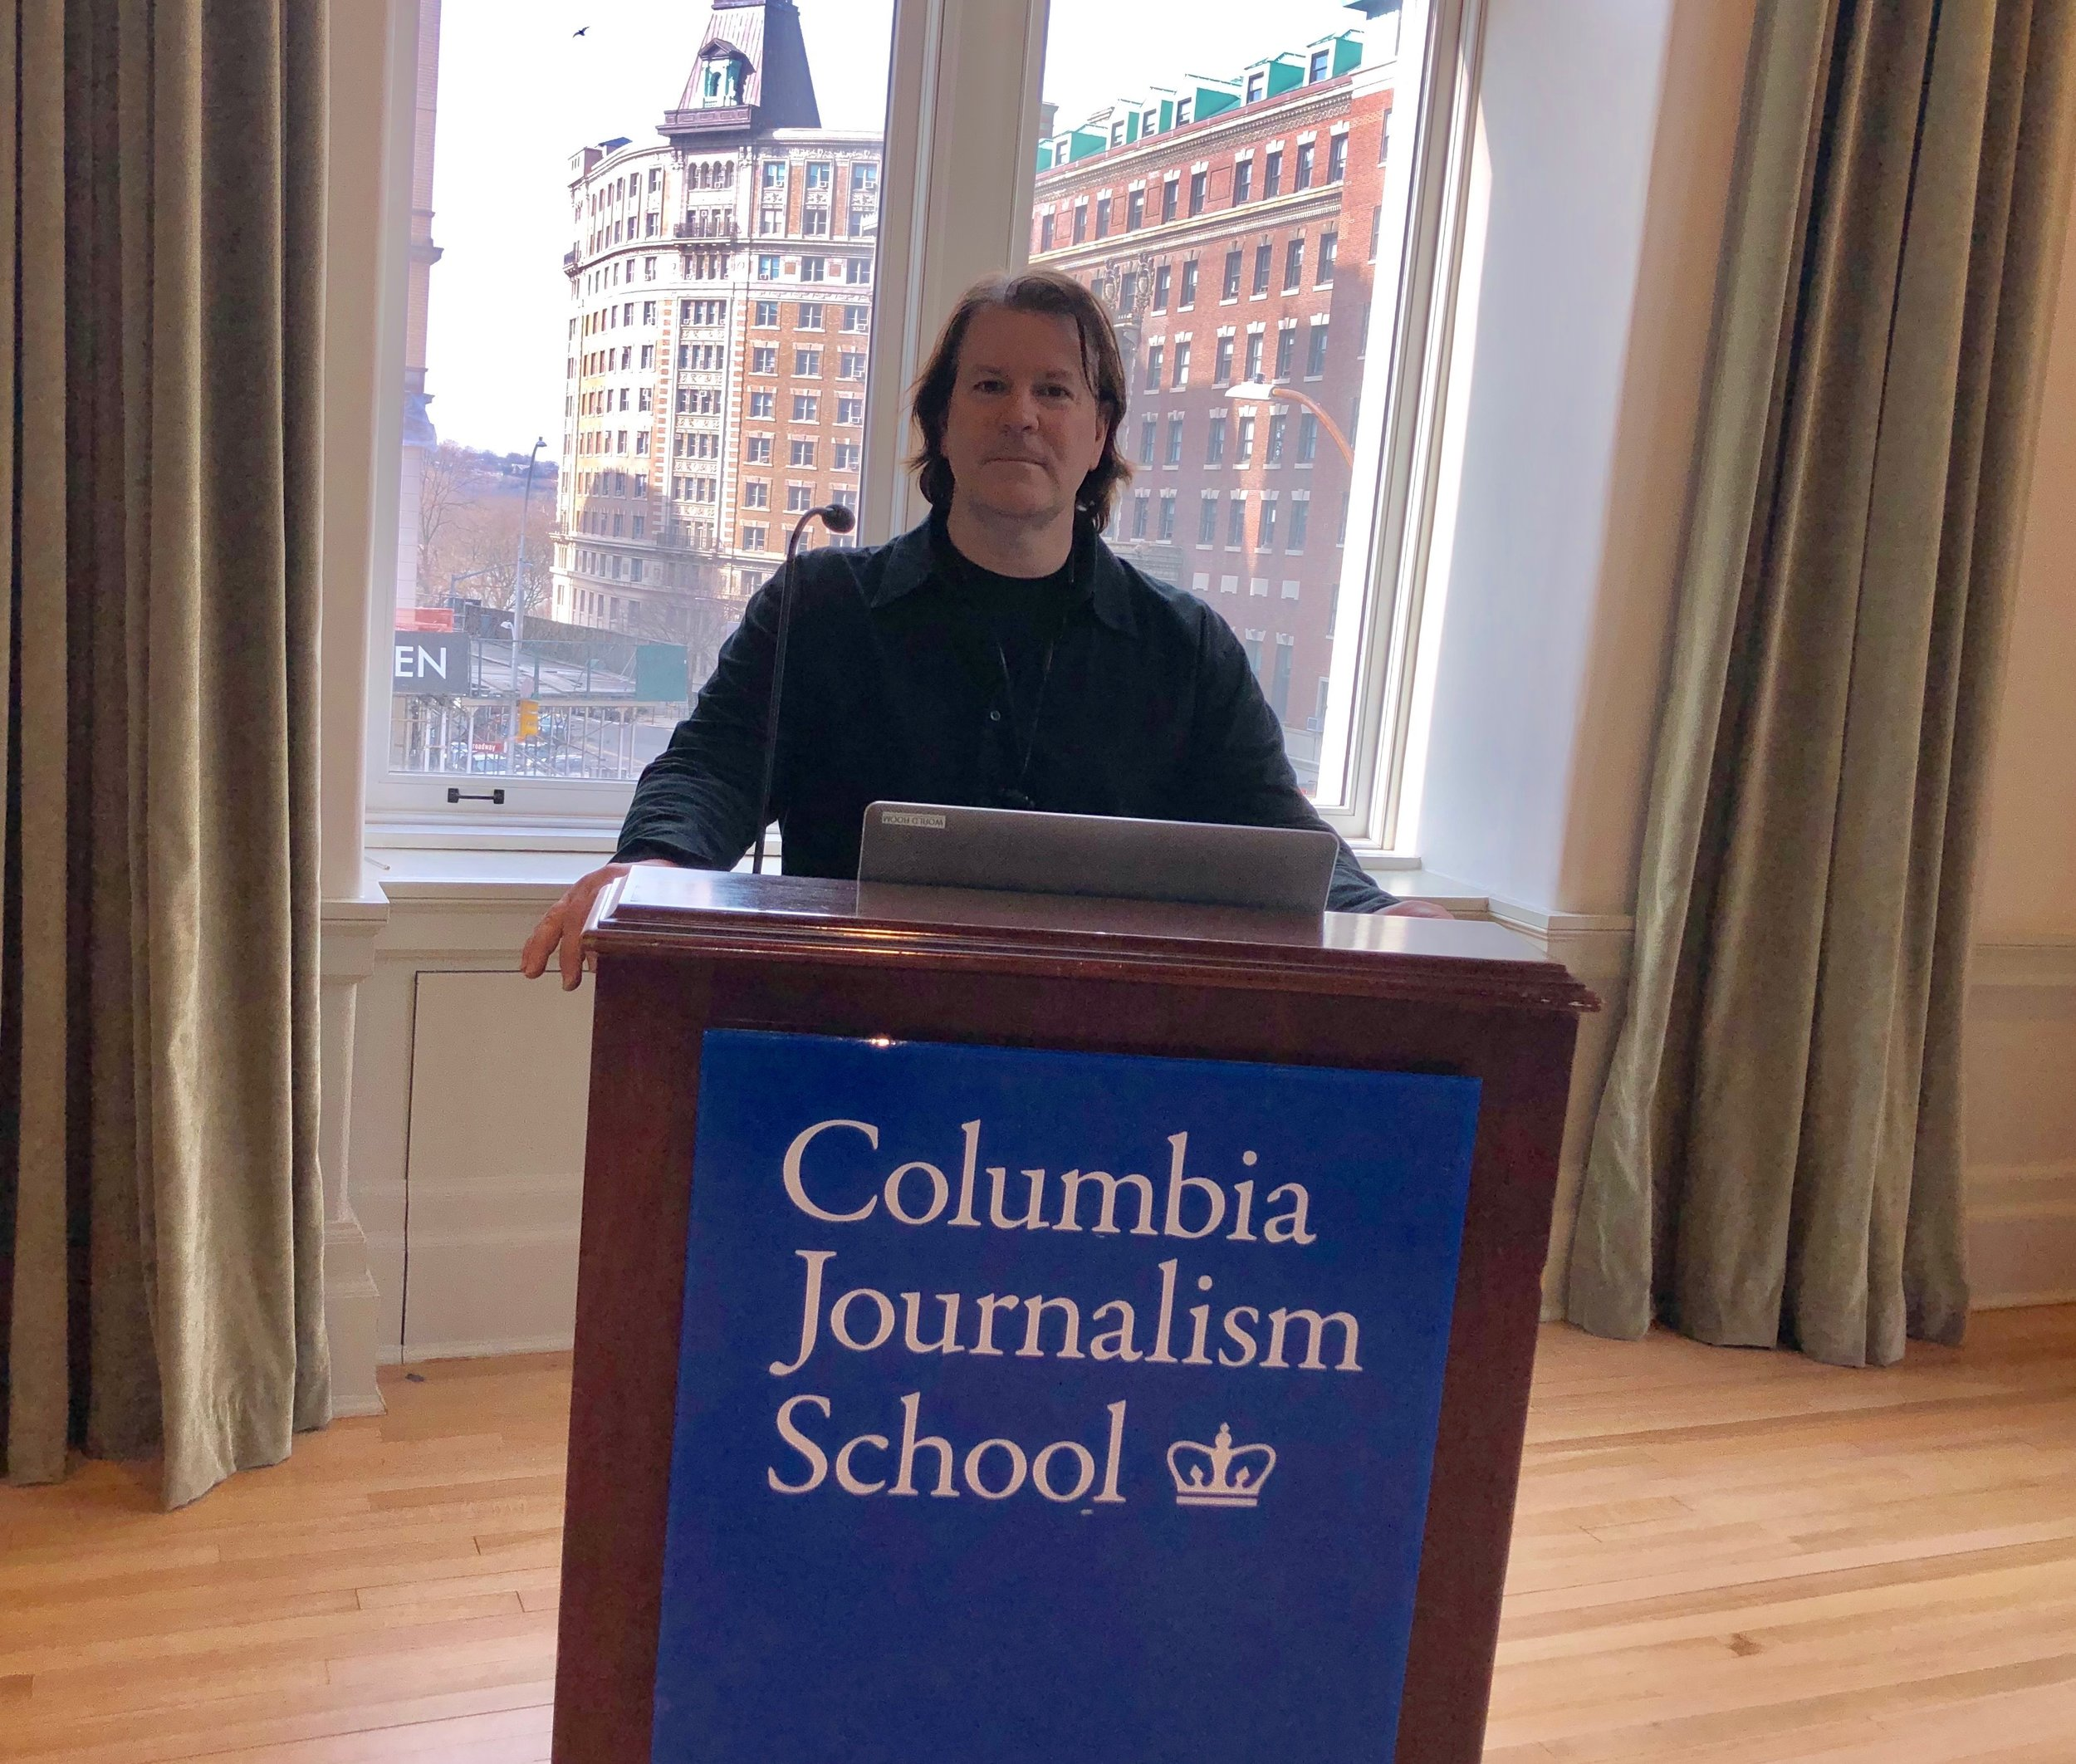 John Ferriter Speaks at Columbia School of Journalism - John Ferriter was proud to speak at The Columbia Journalism School in New York City on March 14, 2019. Students engaged with John Ferriter about the changing world of journalism and how to stand out in such a competitive field.